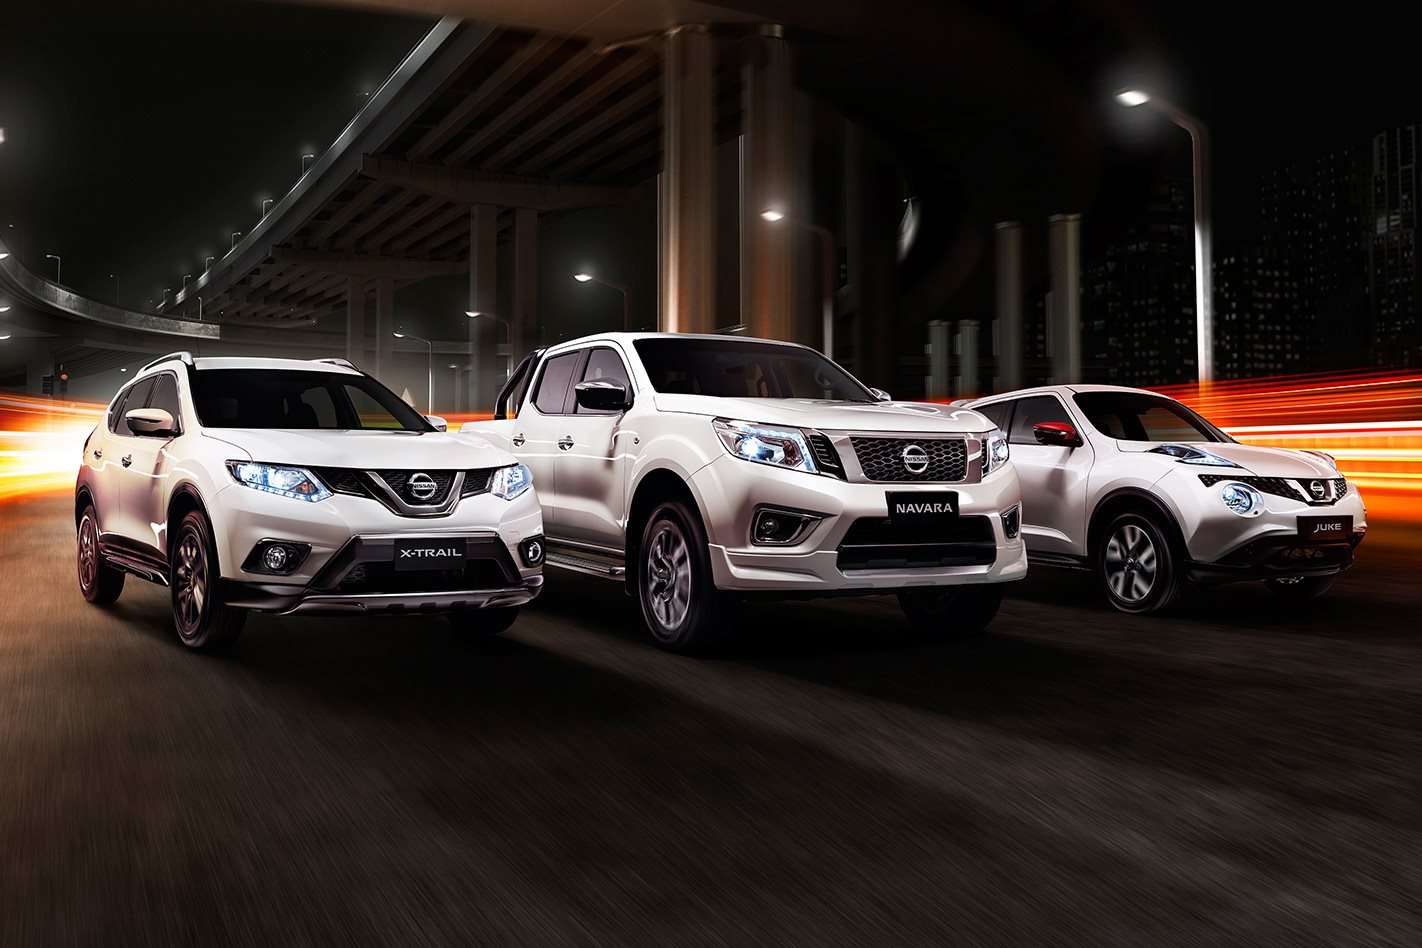 nissan n sport editions announced for nissan juke x trail and navara. Black Bedroom Furniture Sets. Home Design Ideas